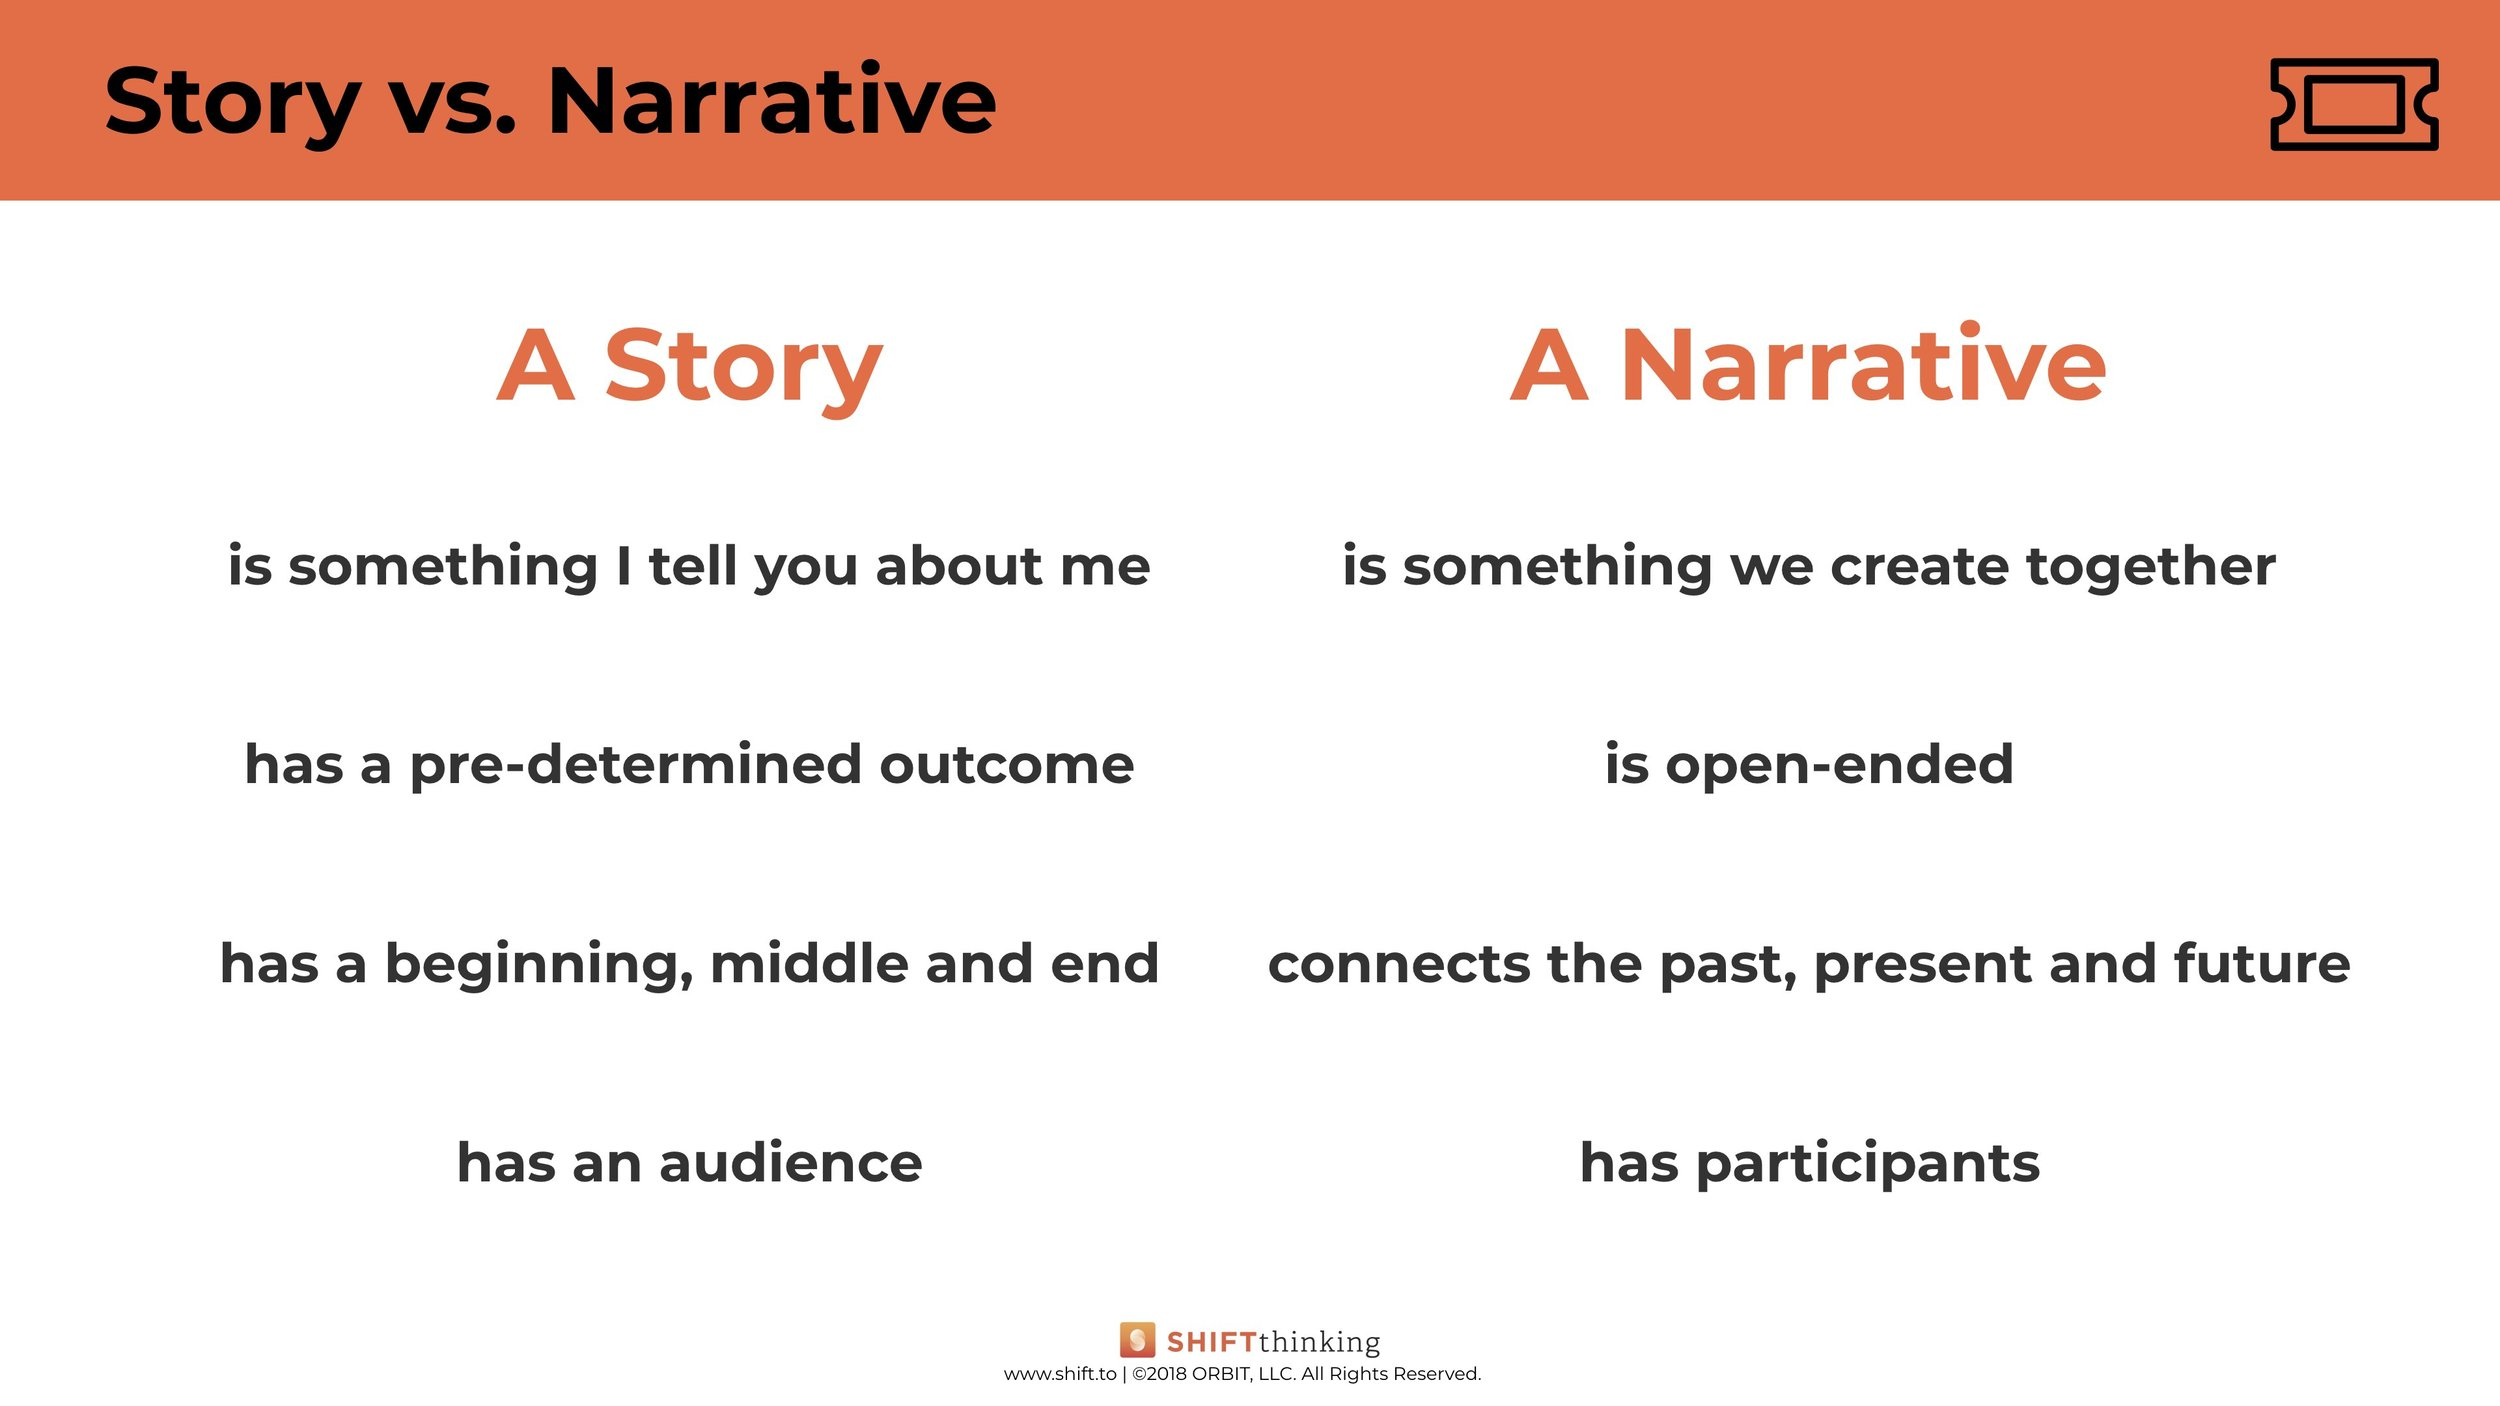 Worksheet: Story vs Narrative